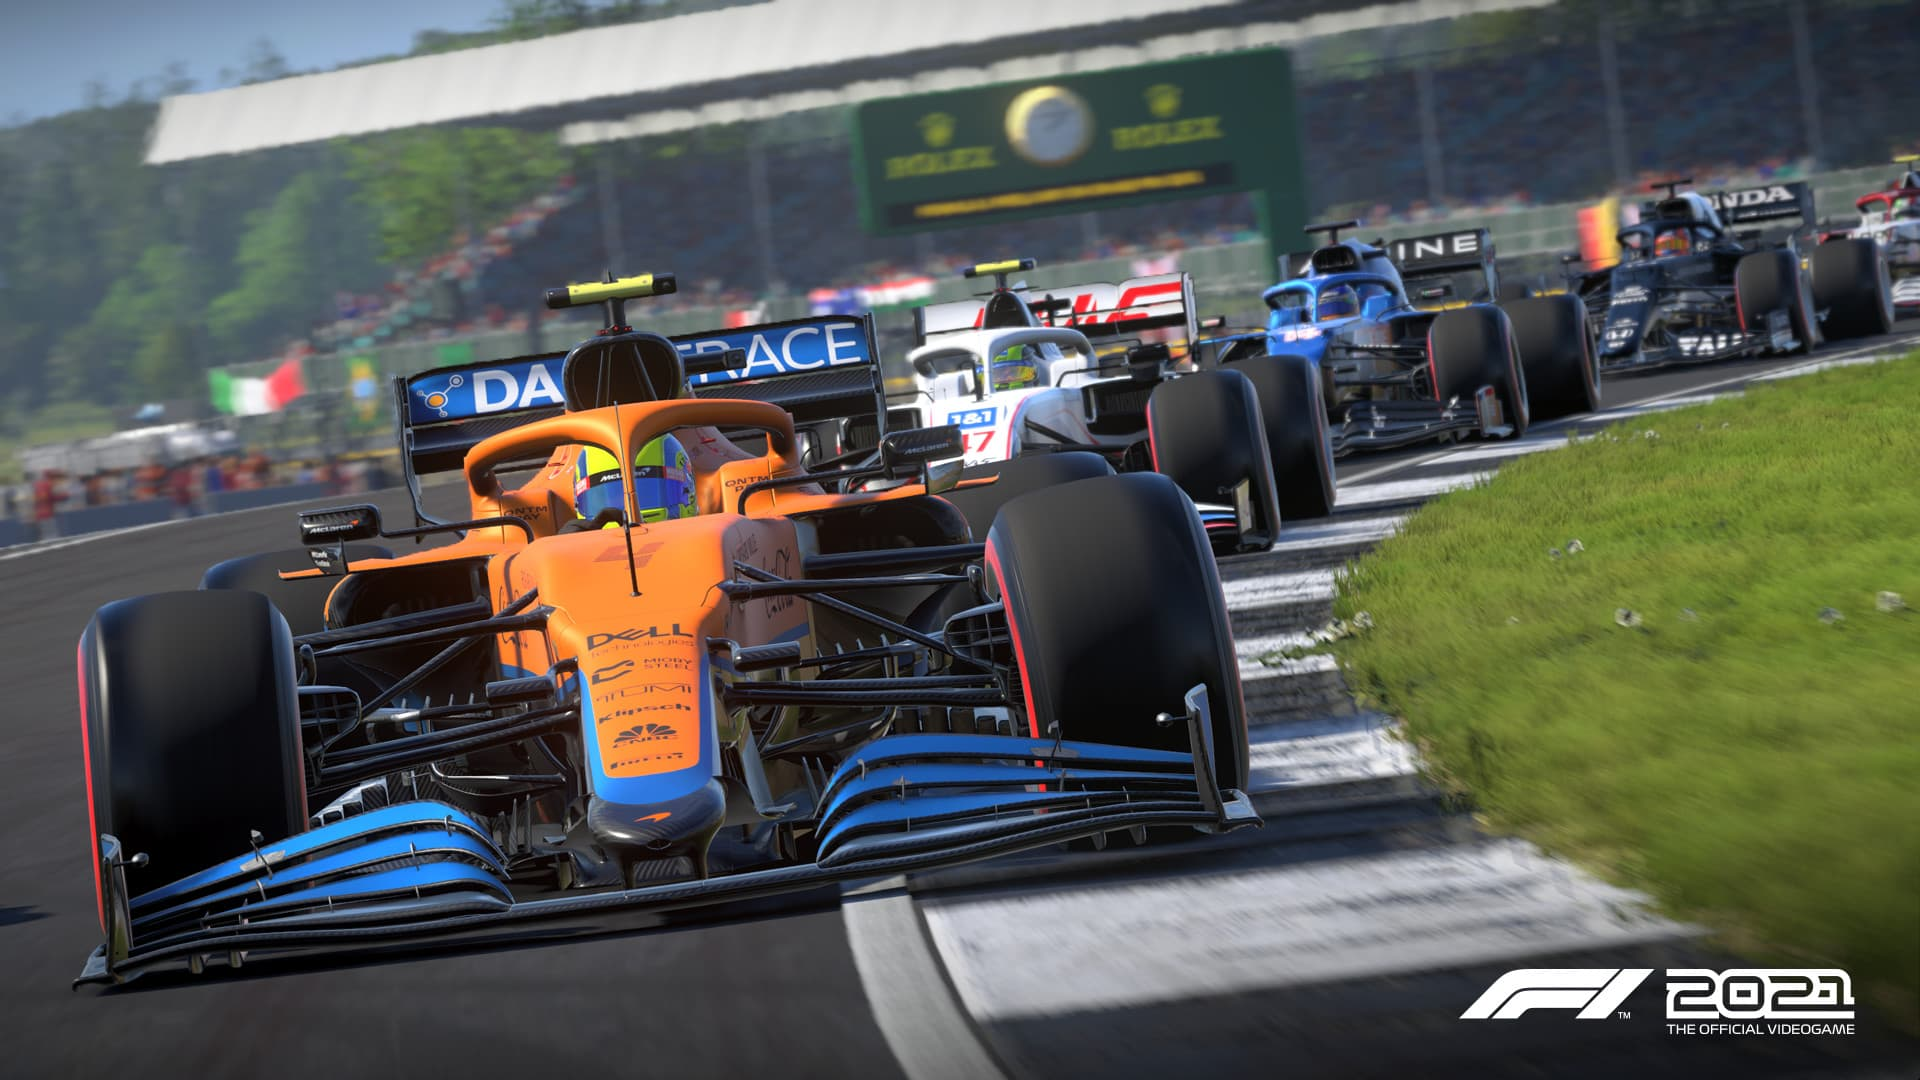 F1 2021 game